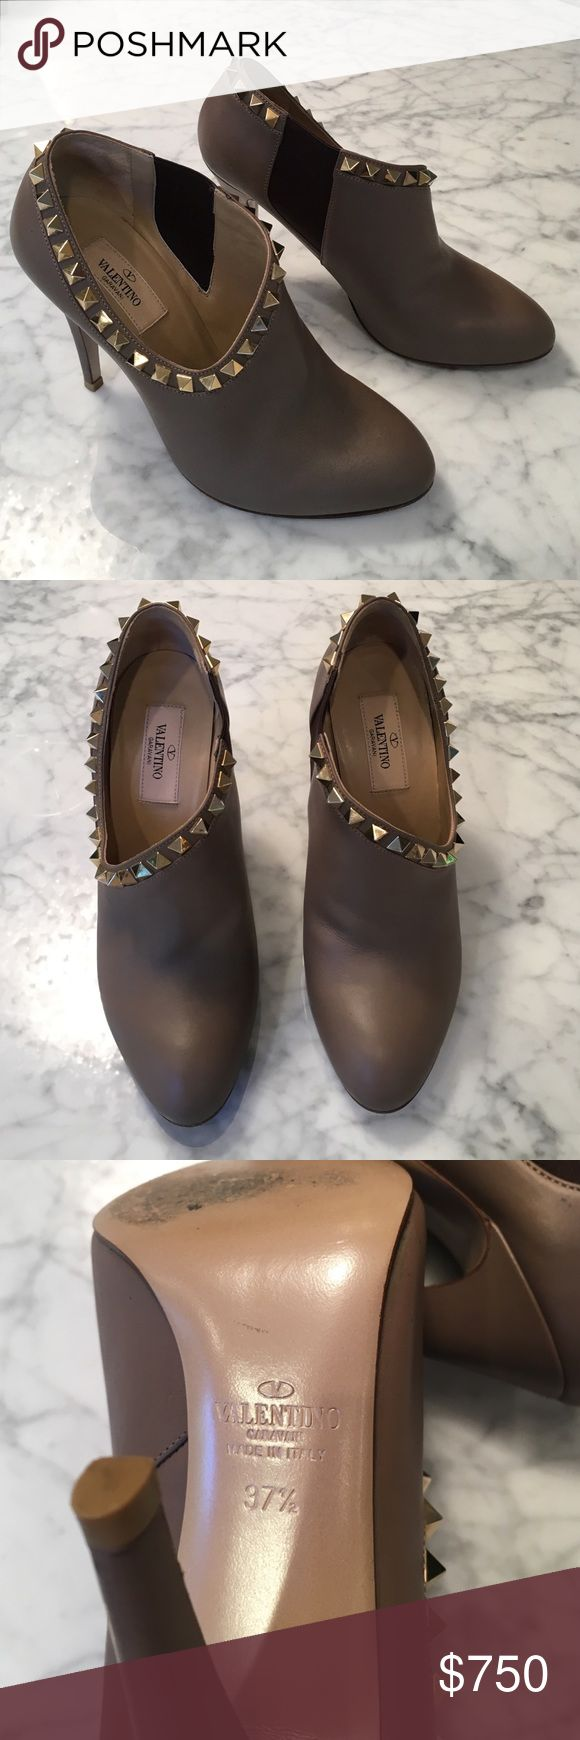 Valentino rock stud booties 7.5 mint! Taupe Valentino rock stud booties 7.5 mint! Made in Italy Valentino Shoes Ankle Boots & Booties